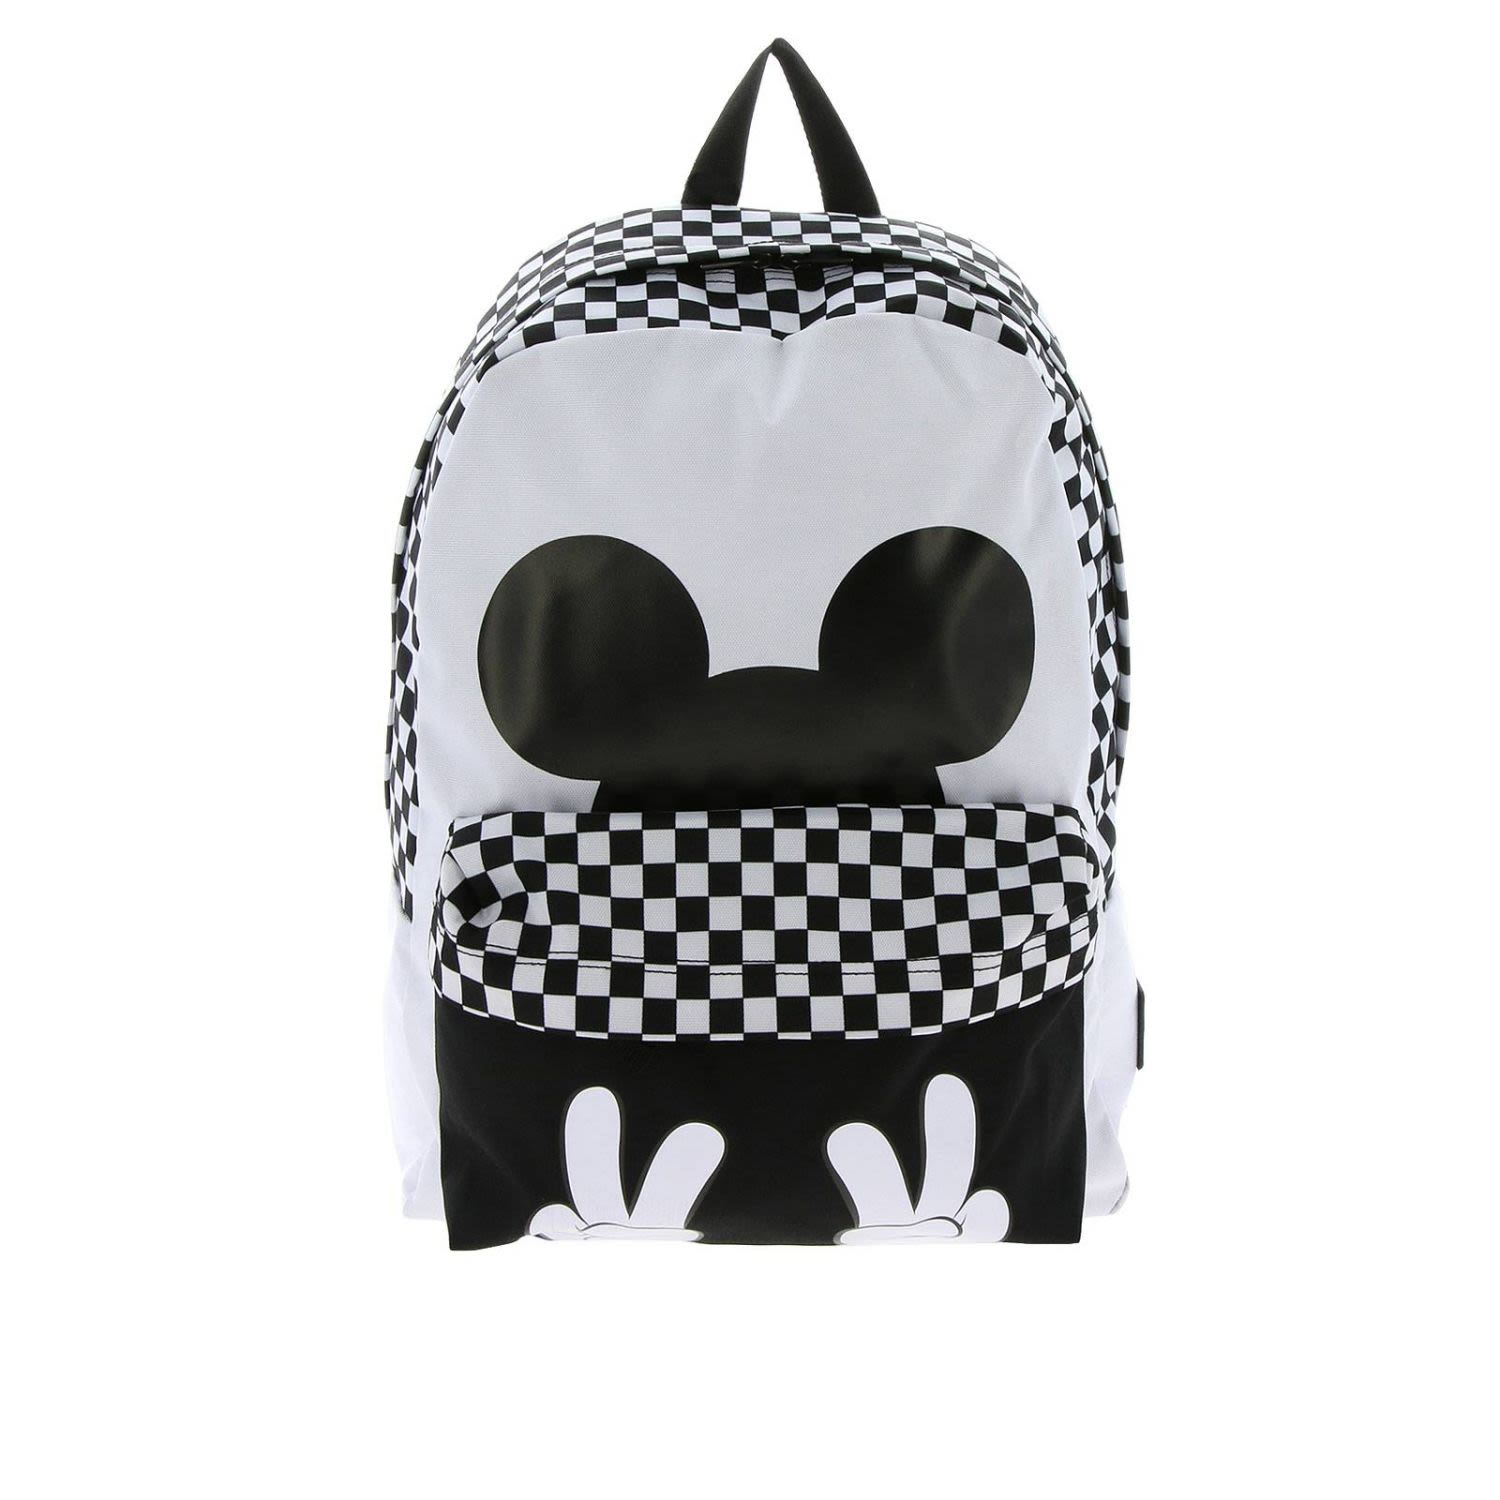 Vans Backpack Vans Disney Backpack Dedicated To Mickey Mouse's 90th Anniversary In Cotton Cloth